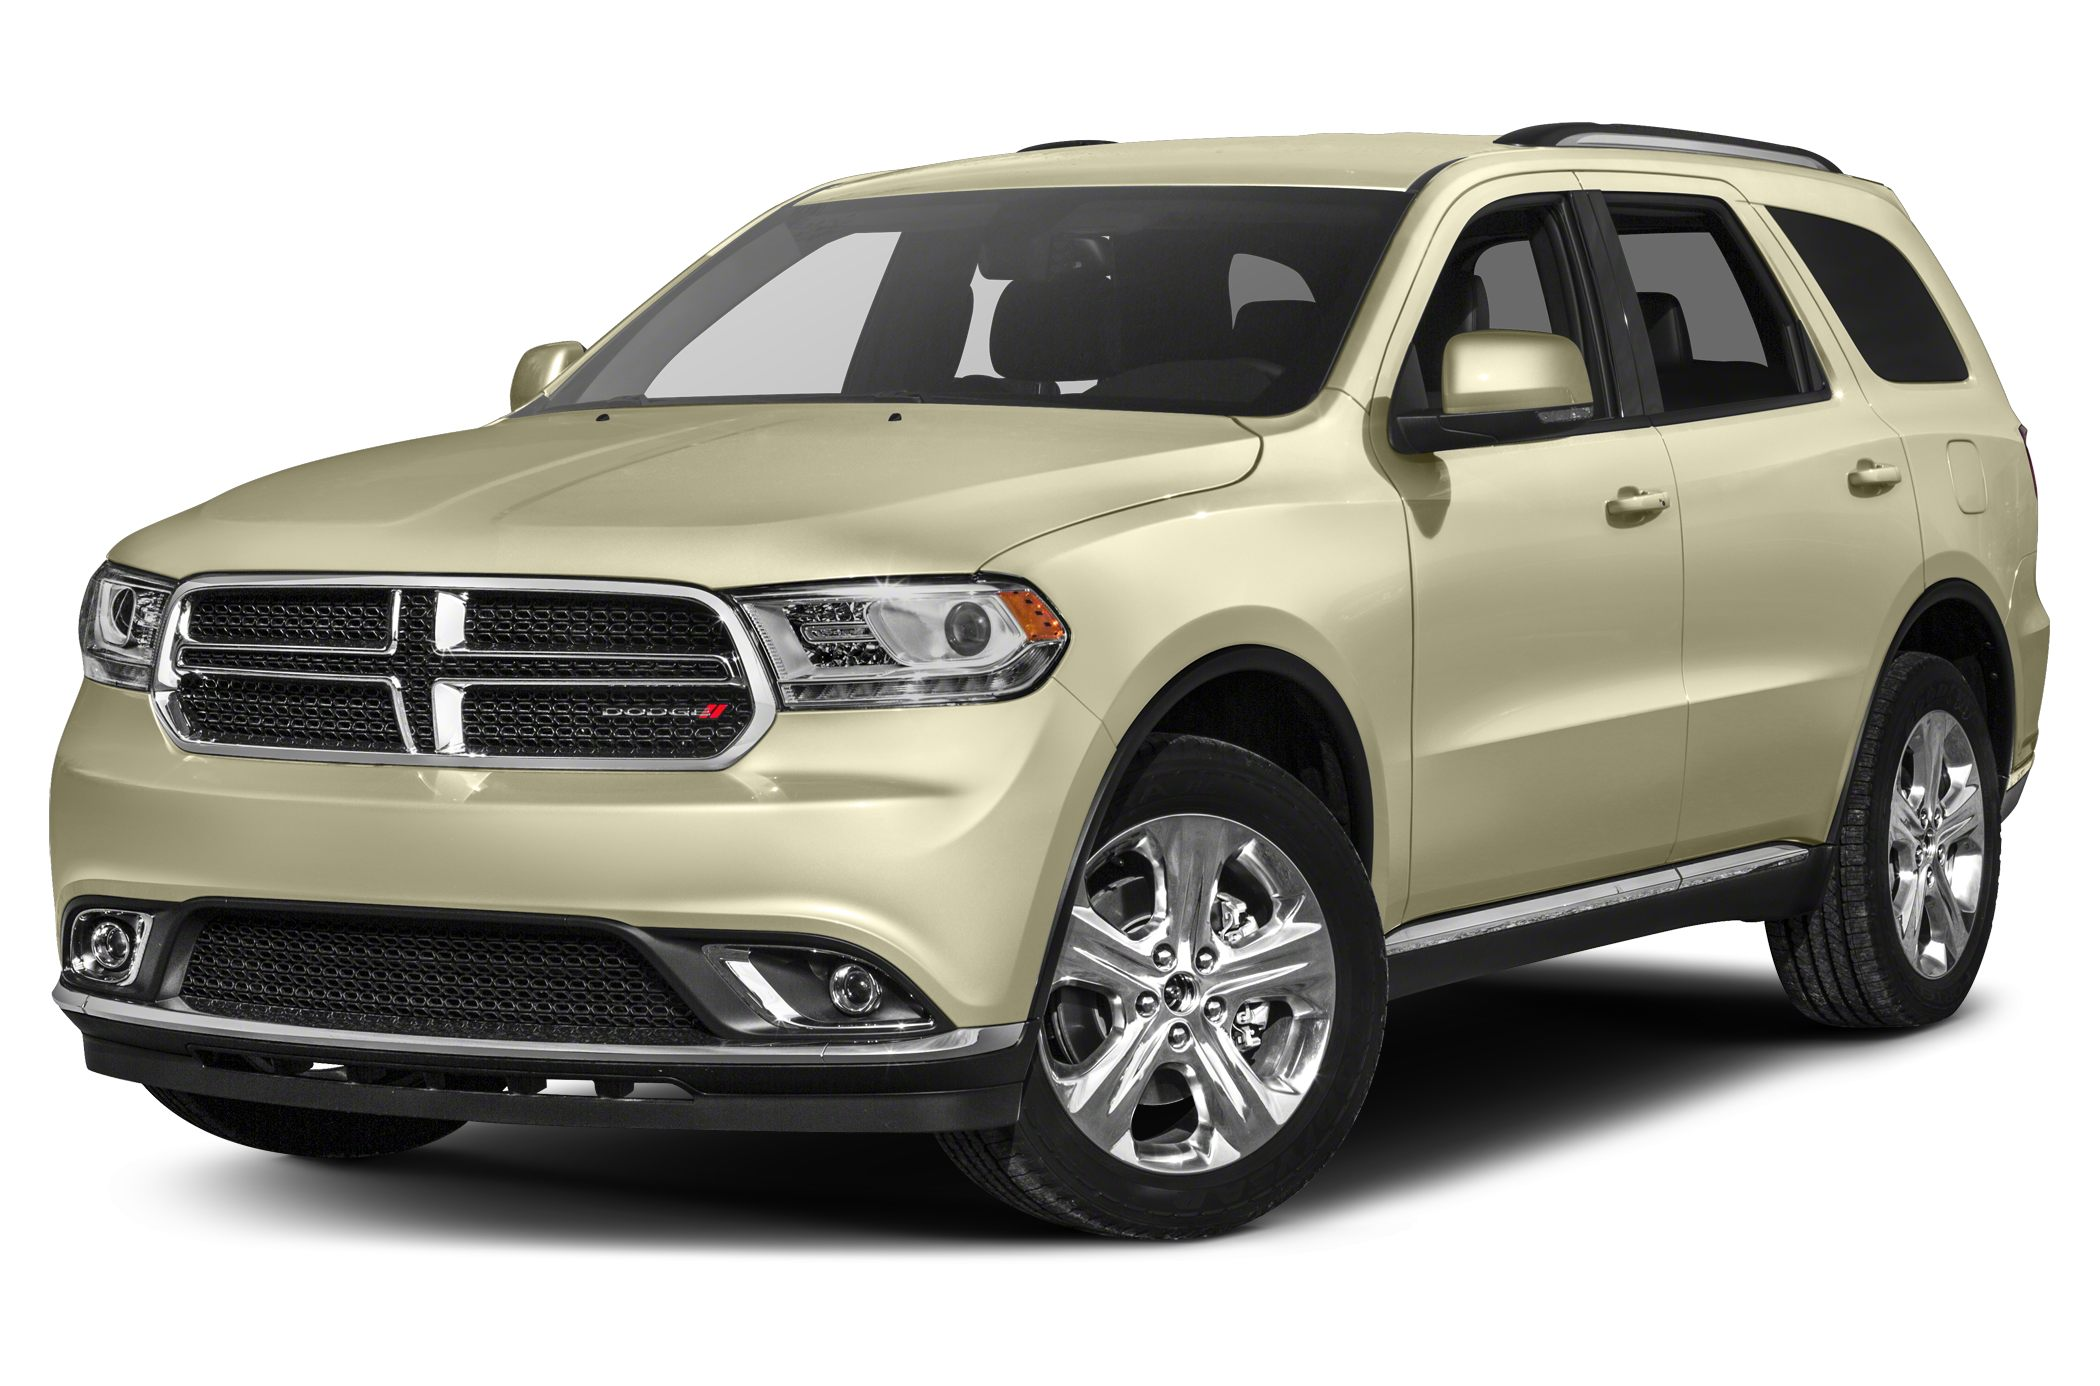 2014 Dodge Durango Limited SUV for sale in Mineola for $35,999 with 9,146 miles.